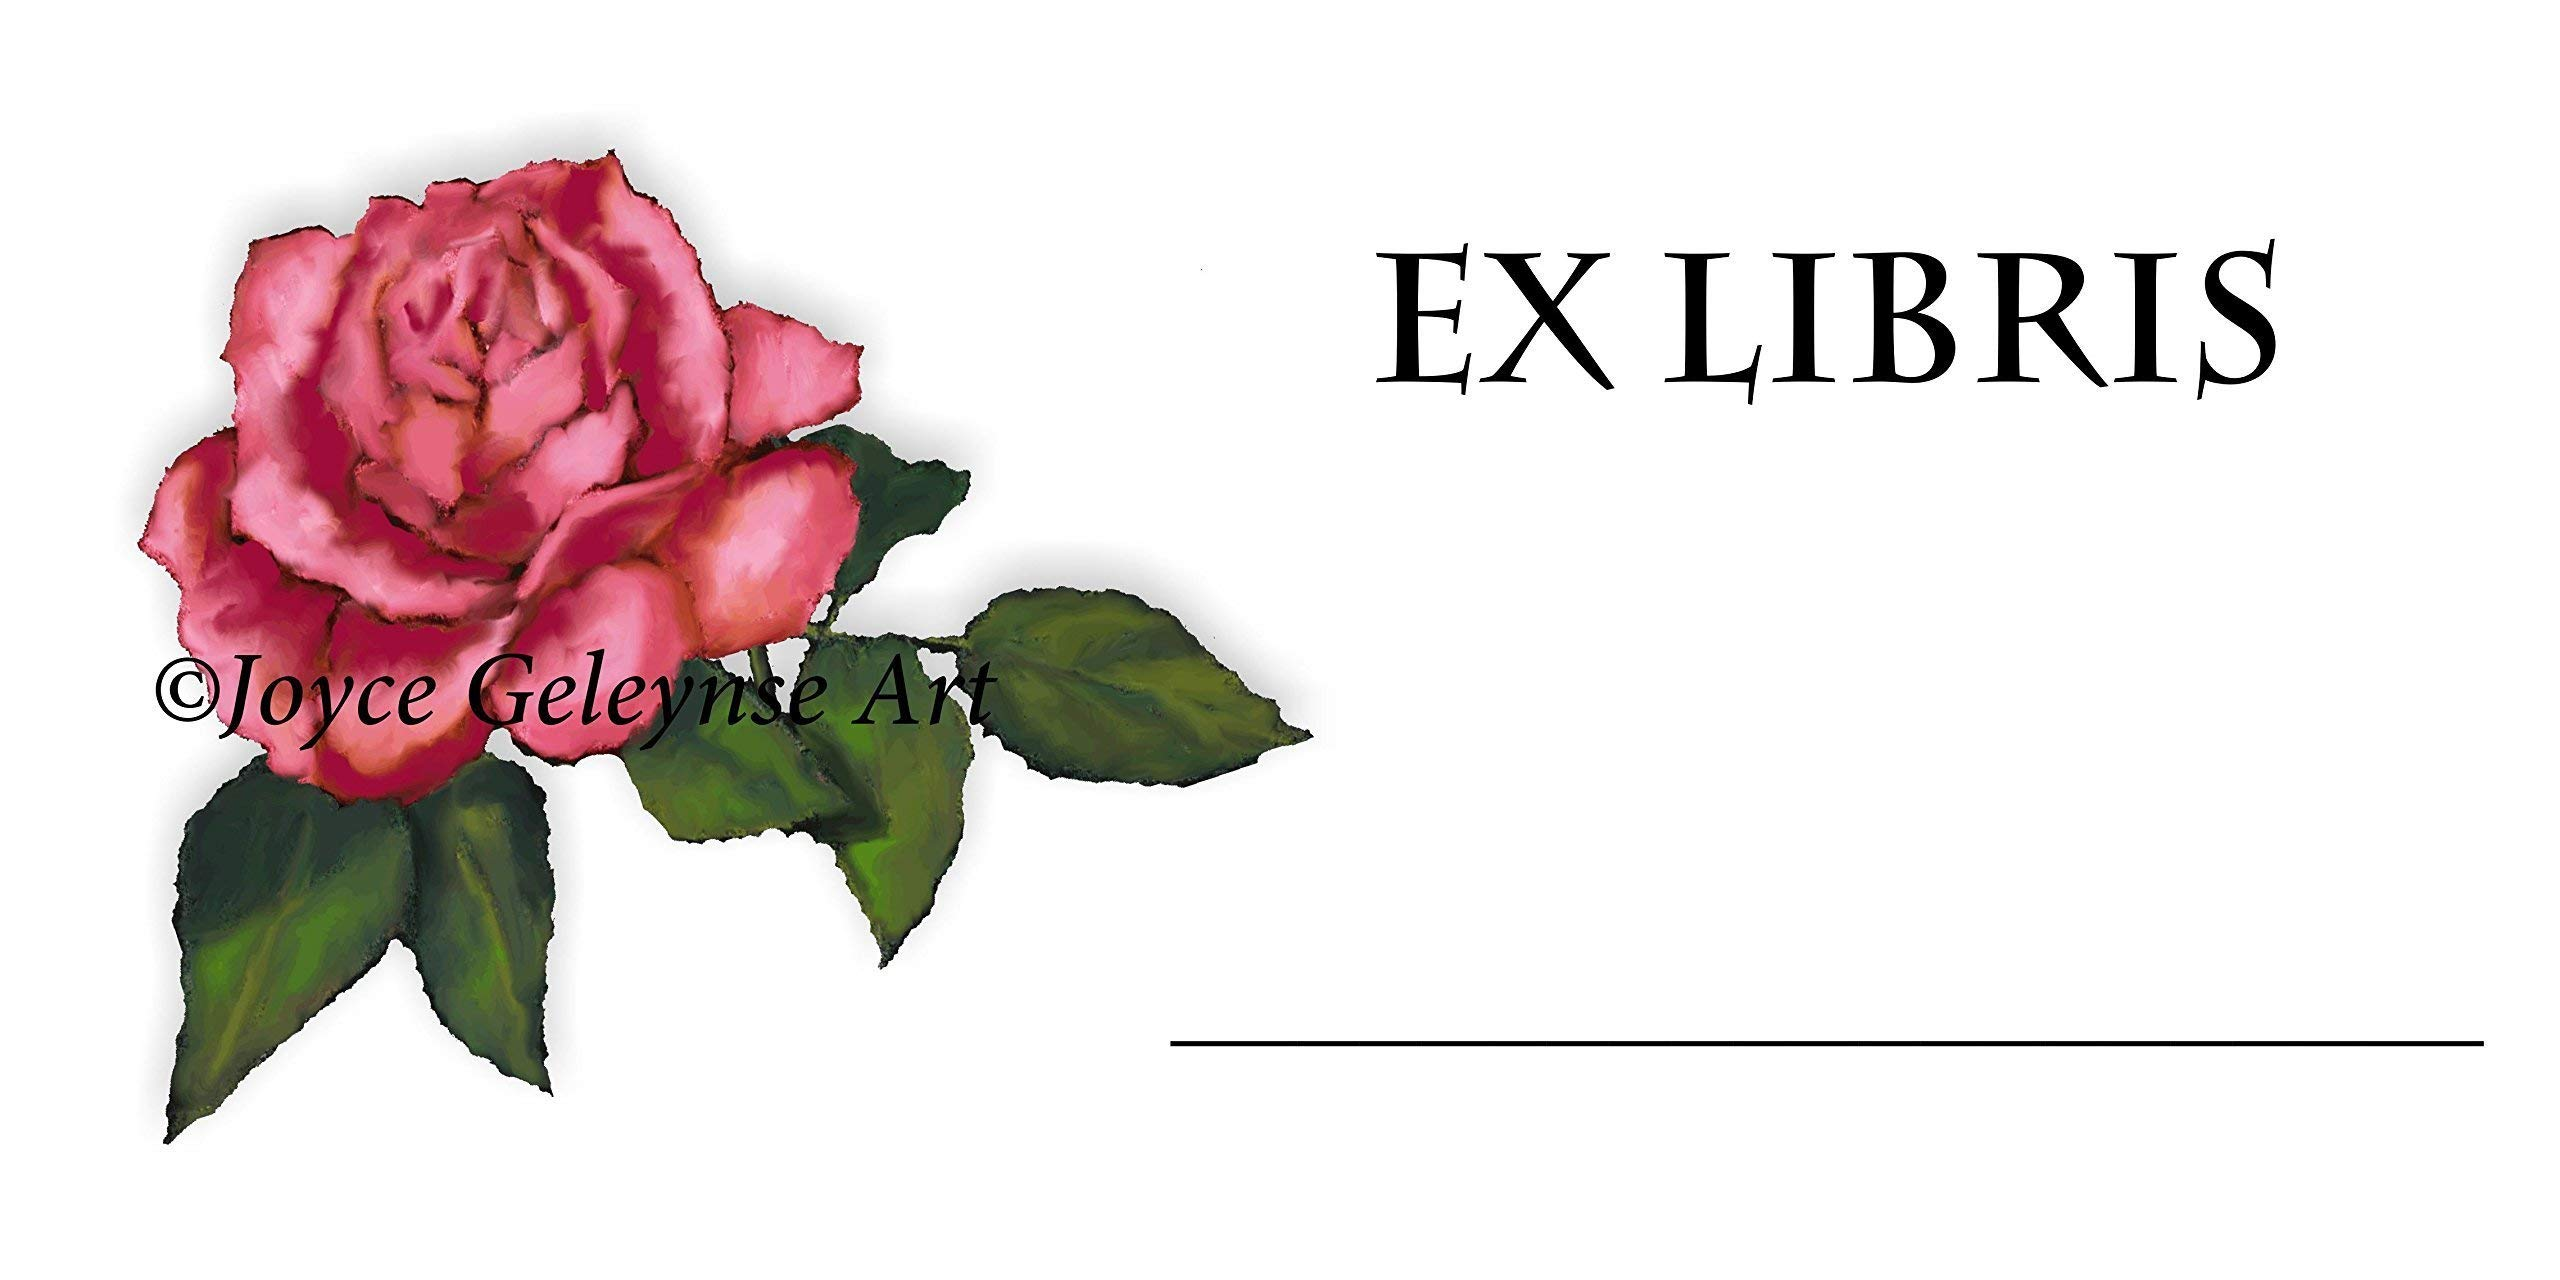 Book Stickers, Bookplate, Your Name,''EX LIBRIS'', Pink Rose Art, Library by Joyce's Art Magnets